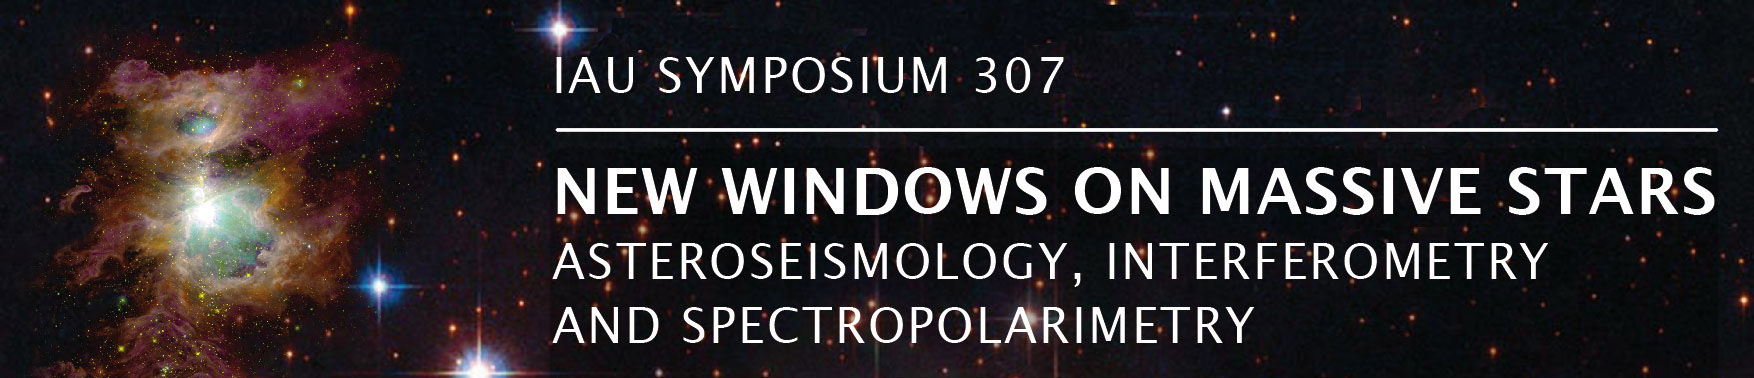 IAU Symposium 307: New windows on massive stars